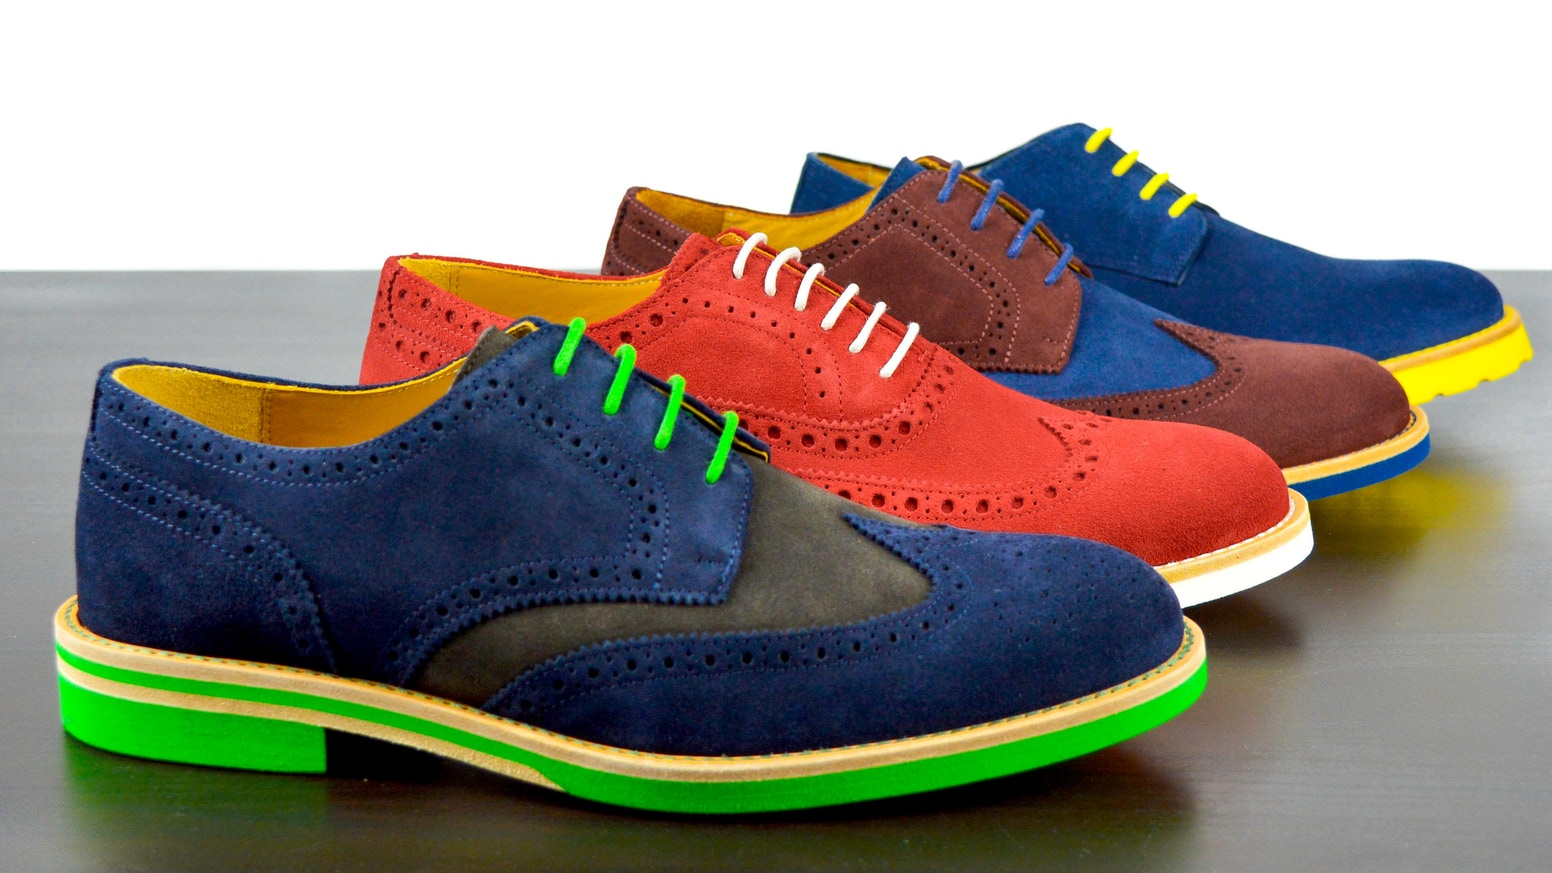 0d977363ad54 Express your personality and stand out from the crowd with classic dress  shoes reimagined with bursts